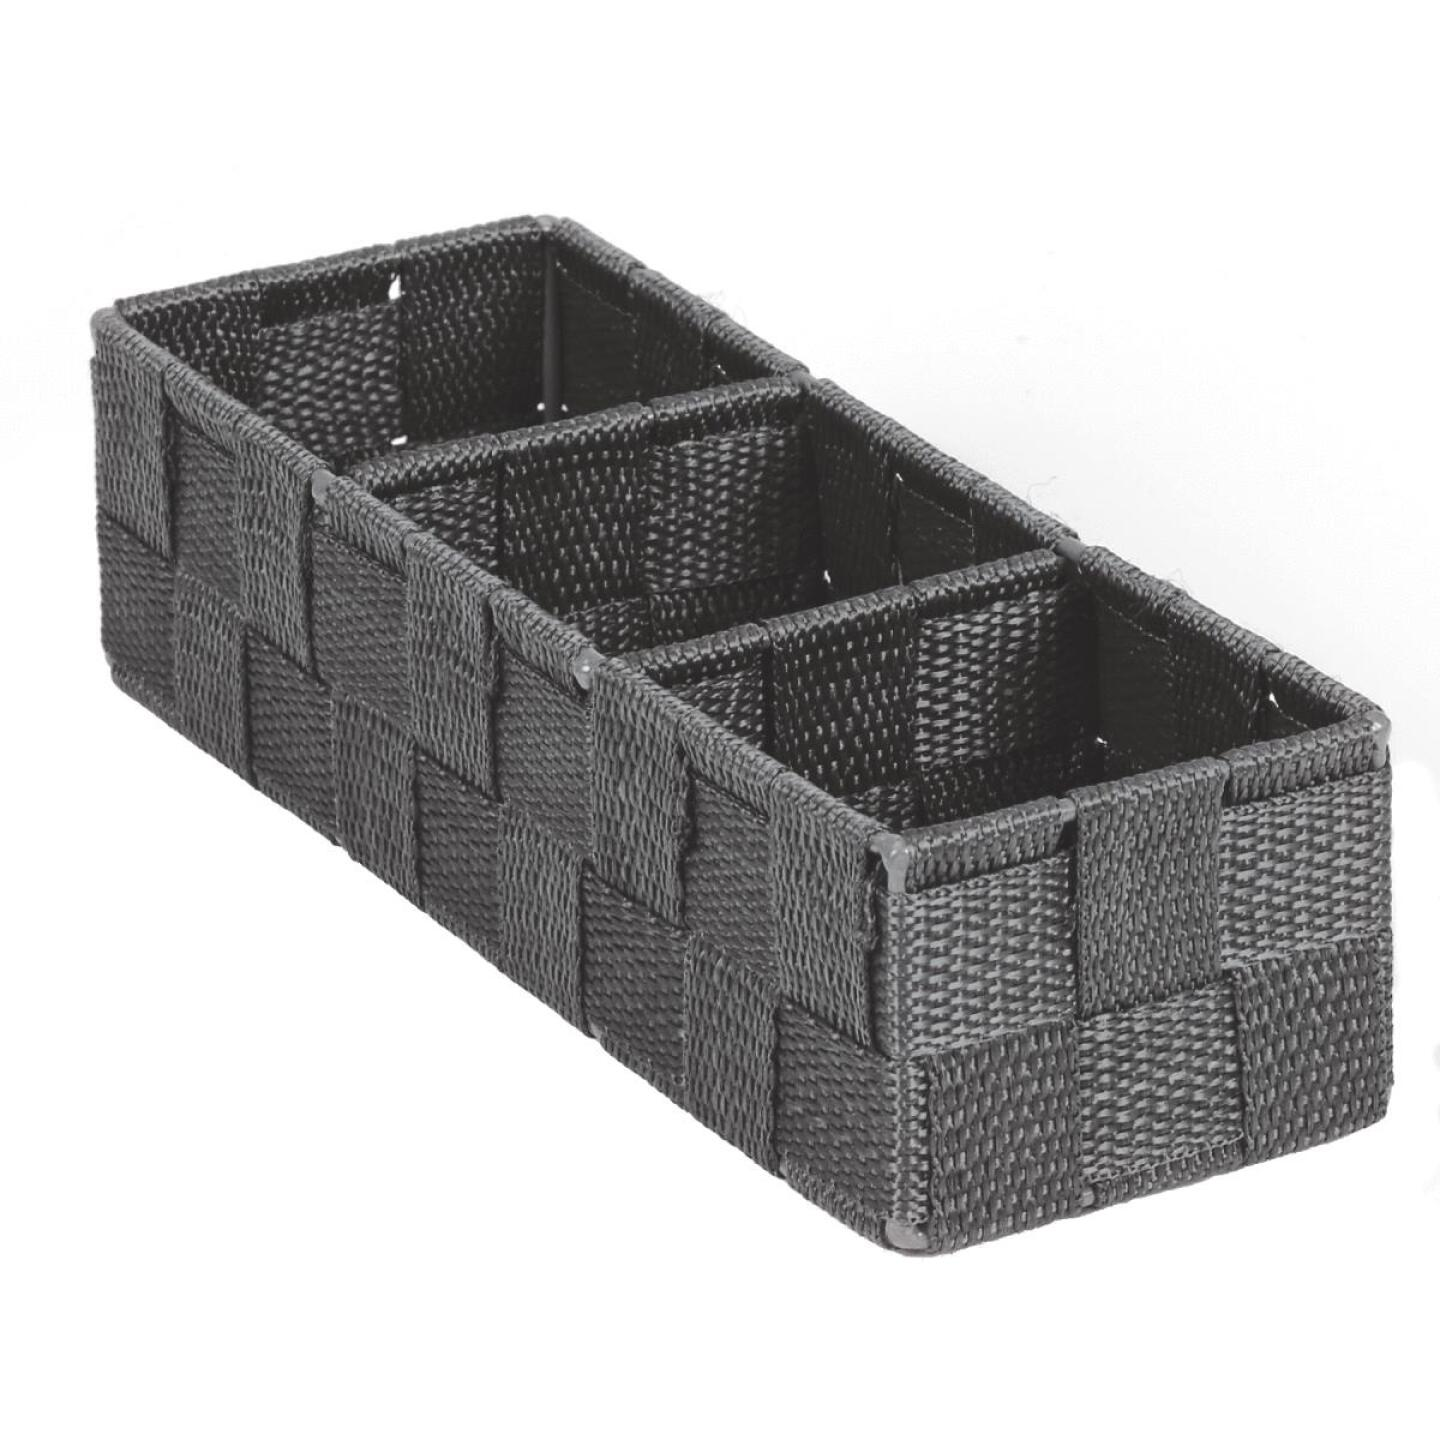 Home Impressions 3.25 In. W. x 2.25 In. H. x 9.5 In. L. Woven Storage Tray, Gray Image 1